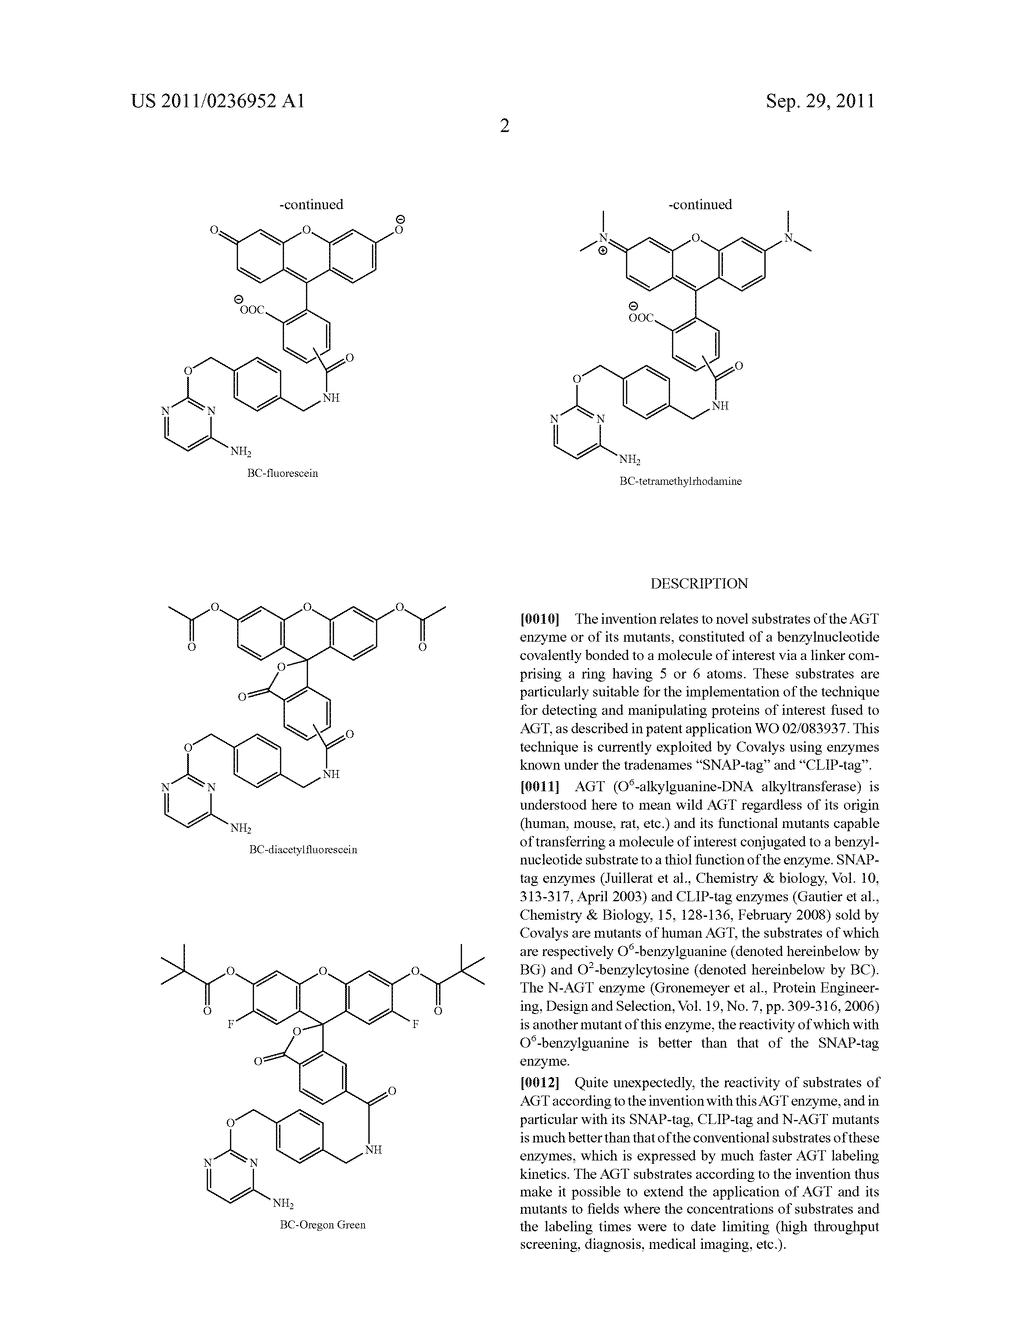 NOVEL SUBSTRATES OF O6-ALKYLGUANINE-DNA ALKYLTRANSFERASE AND MUTANTS     THEREOF - diagram, schematic, and image 16